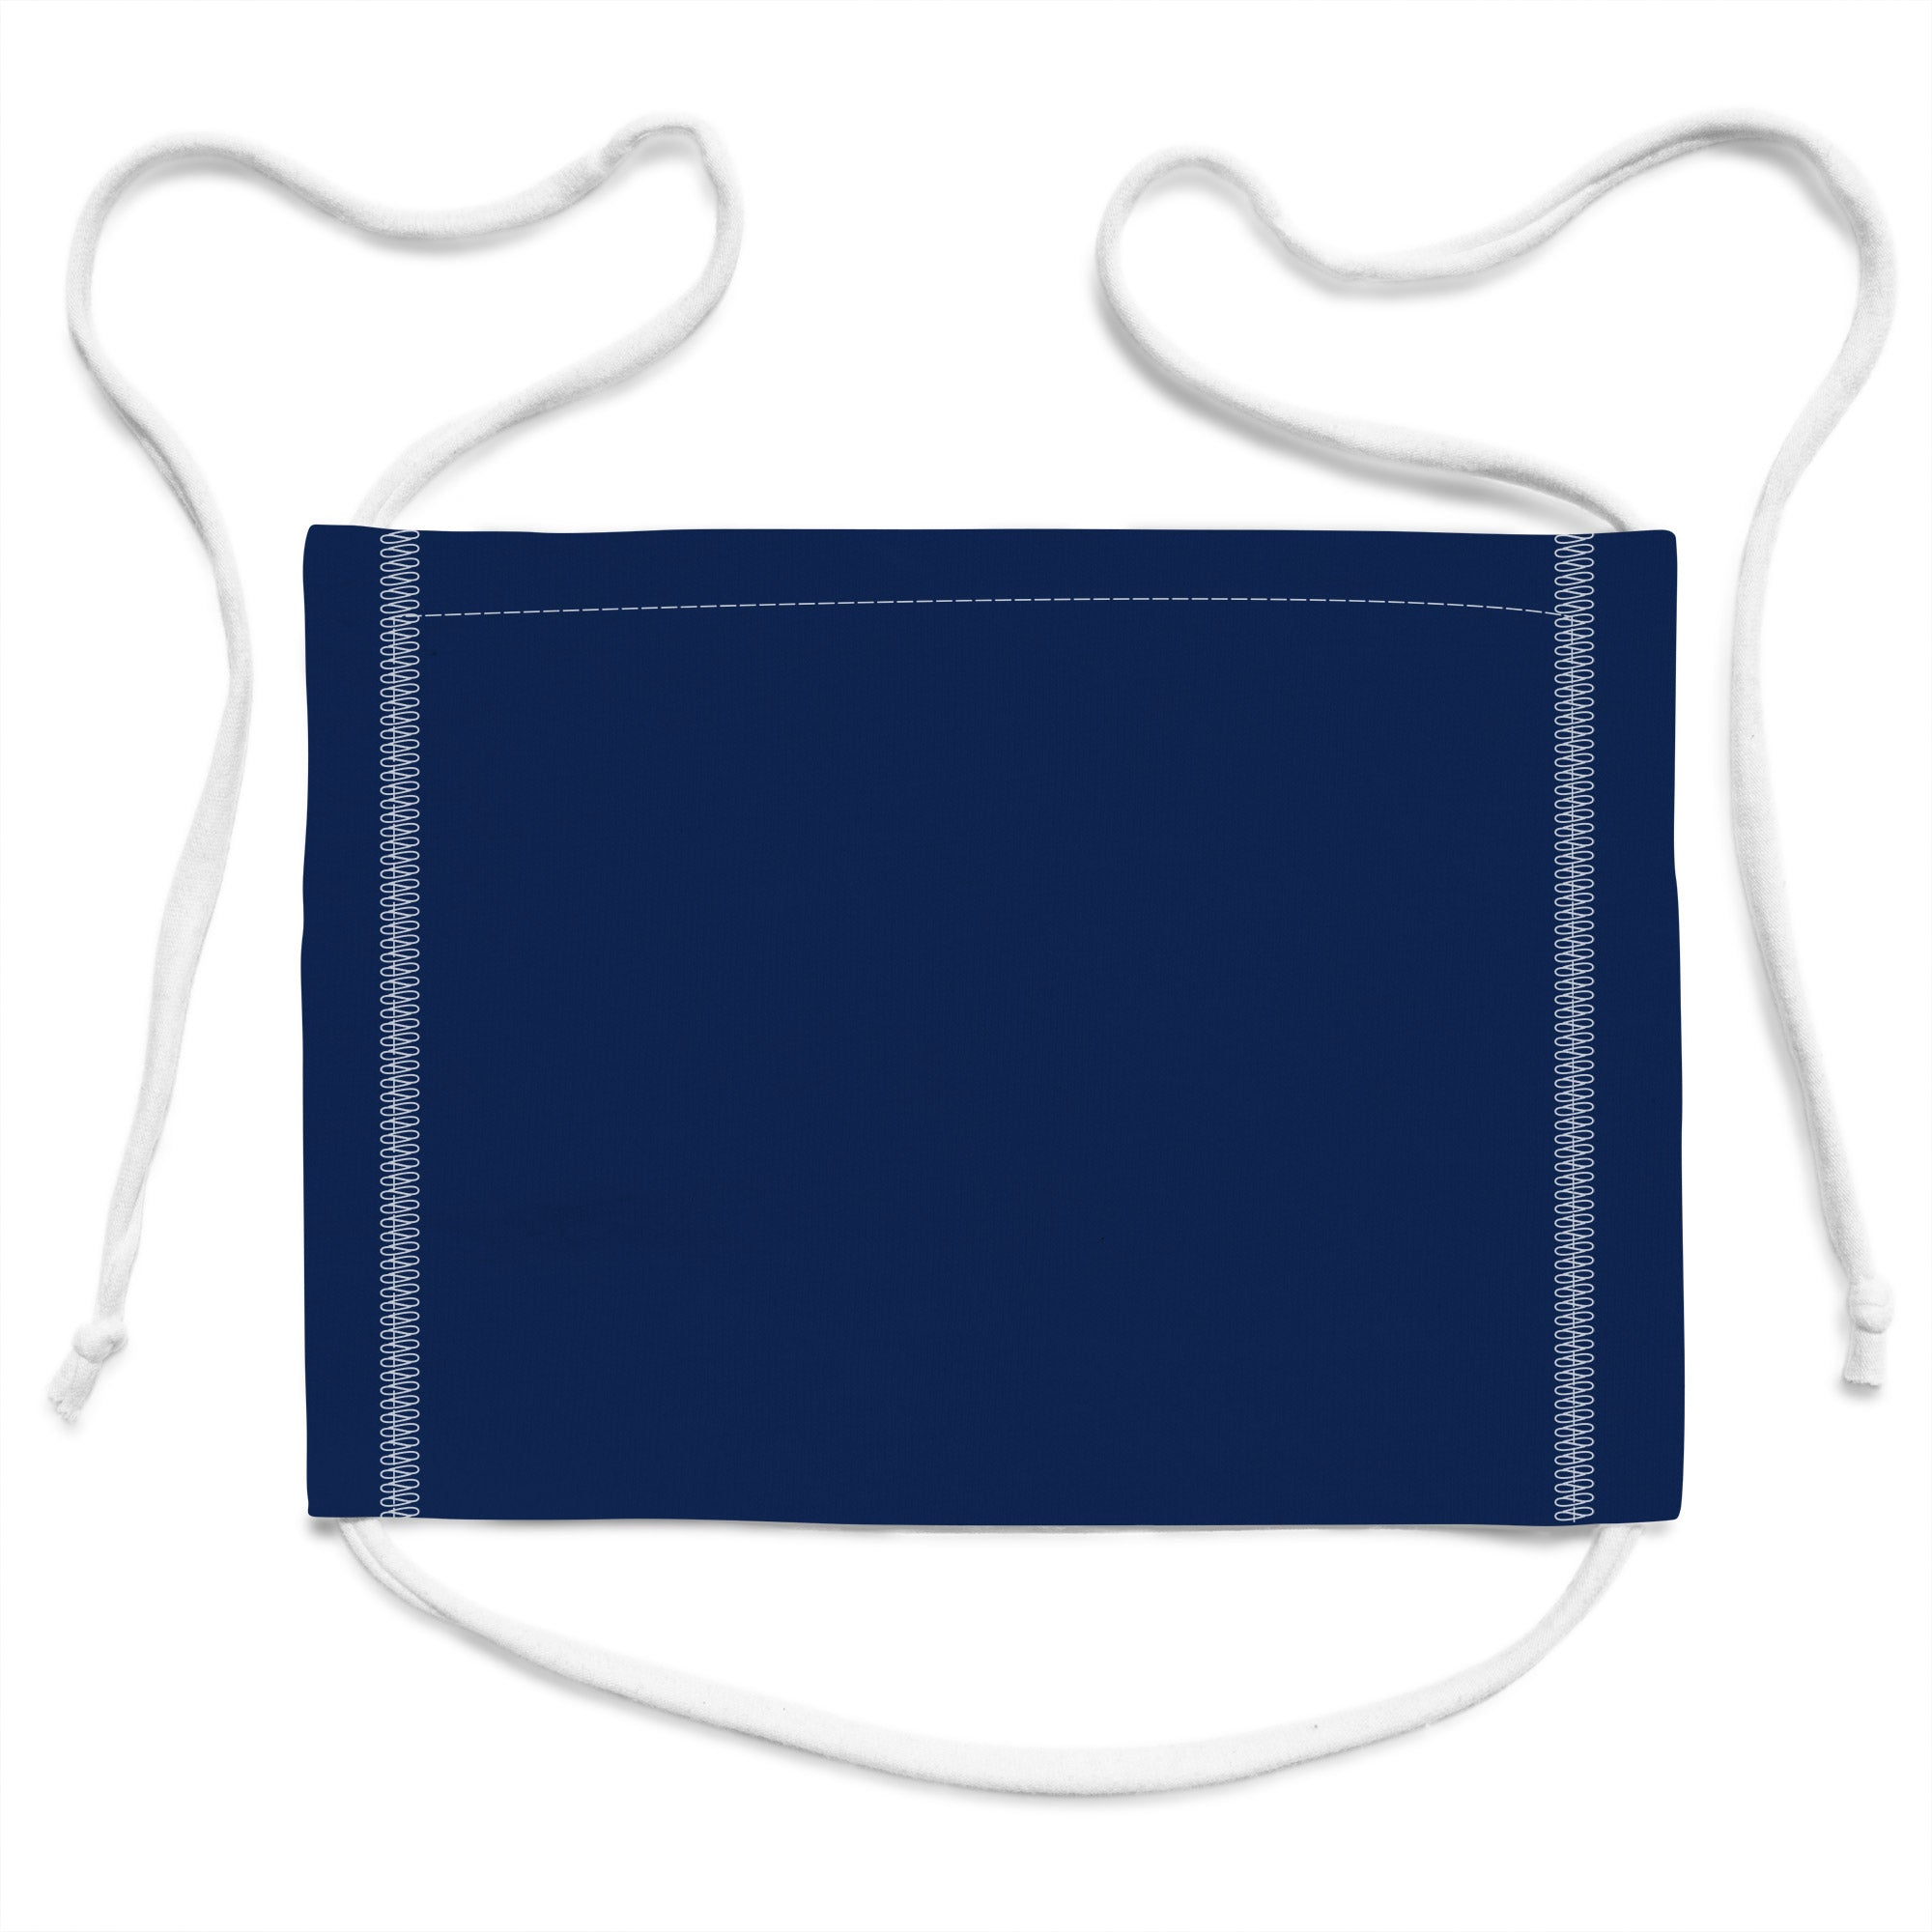 CHEAP Navy Face Mask 26660545829 – Clothing Accessories